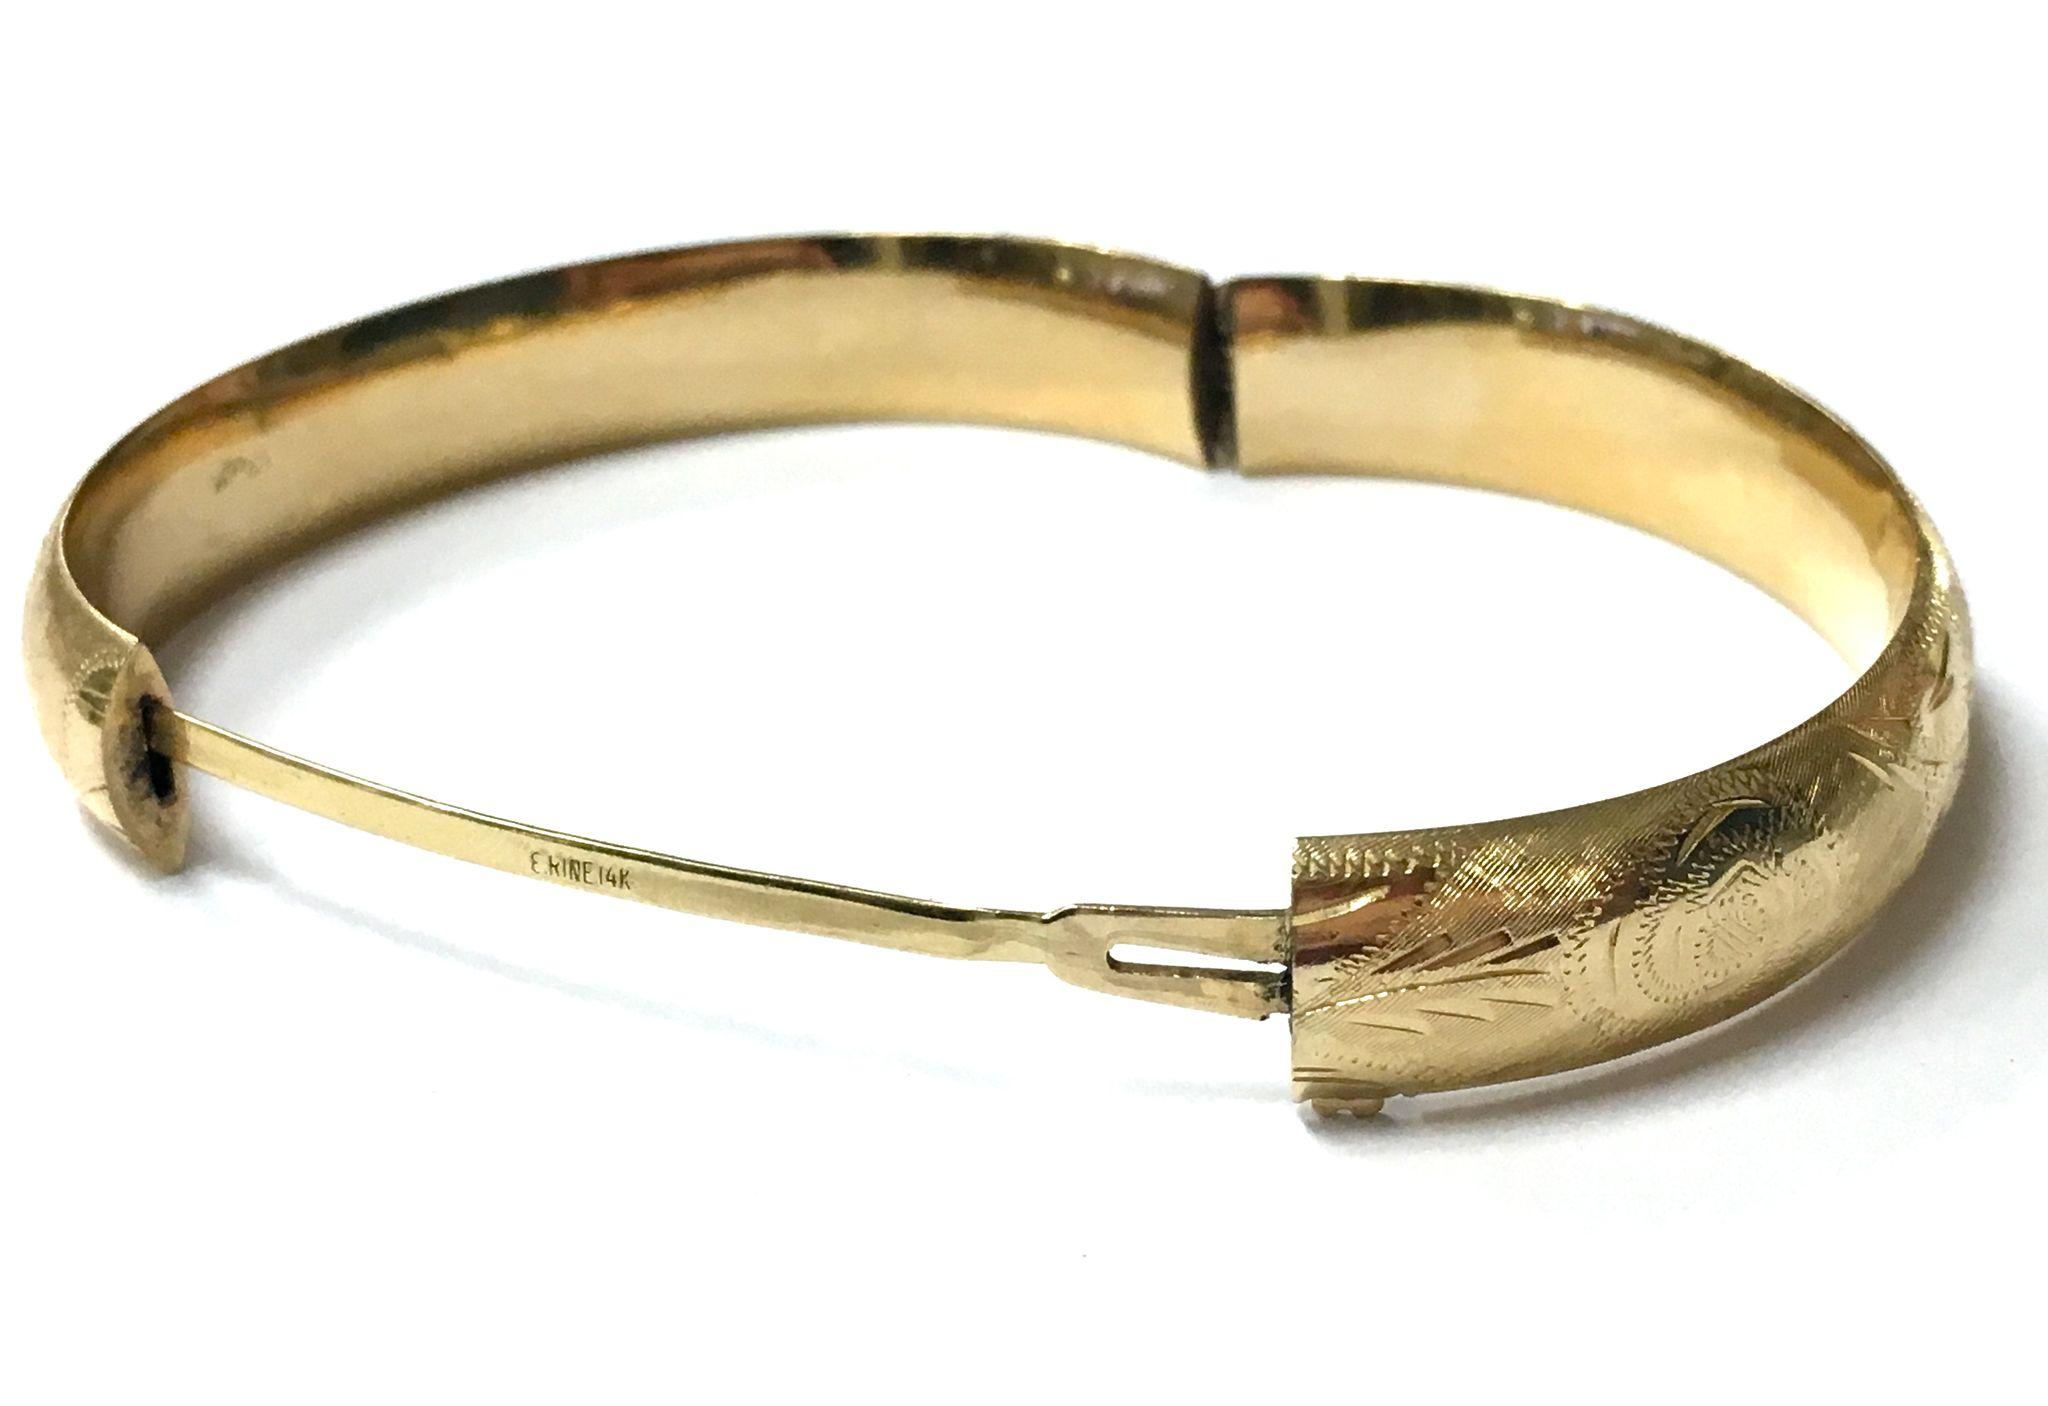 juweliers pin bicolor diamond bangle bracelet with gold bangles stylish carat goldberg